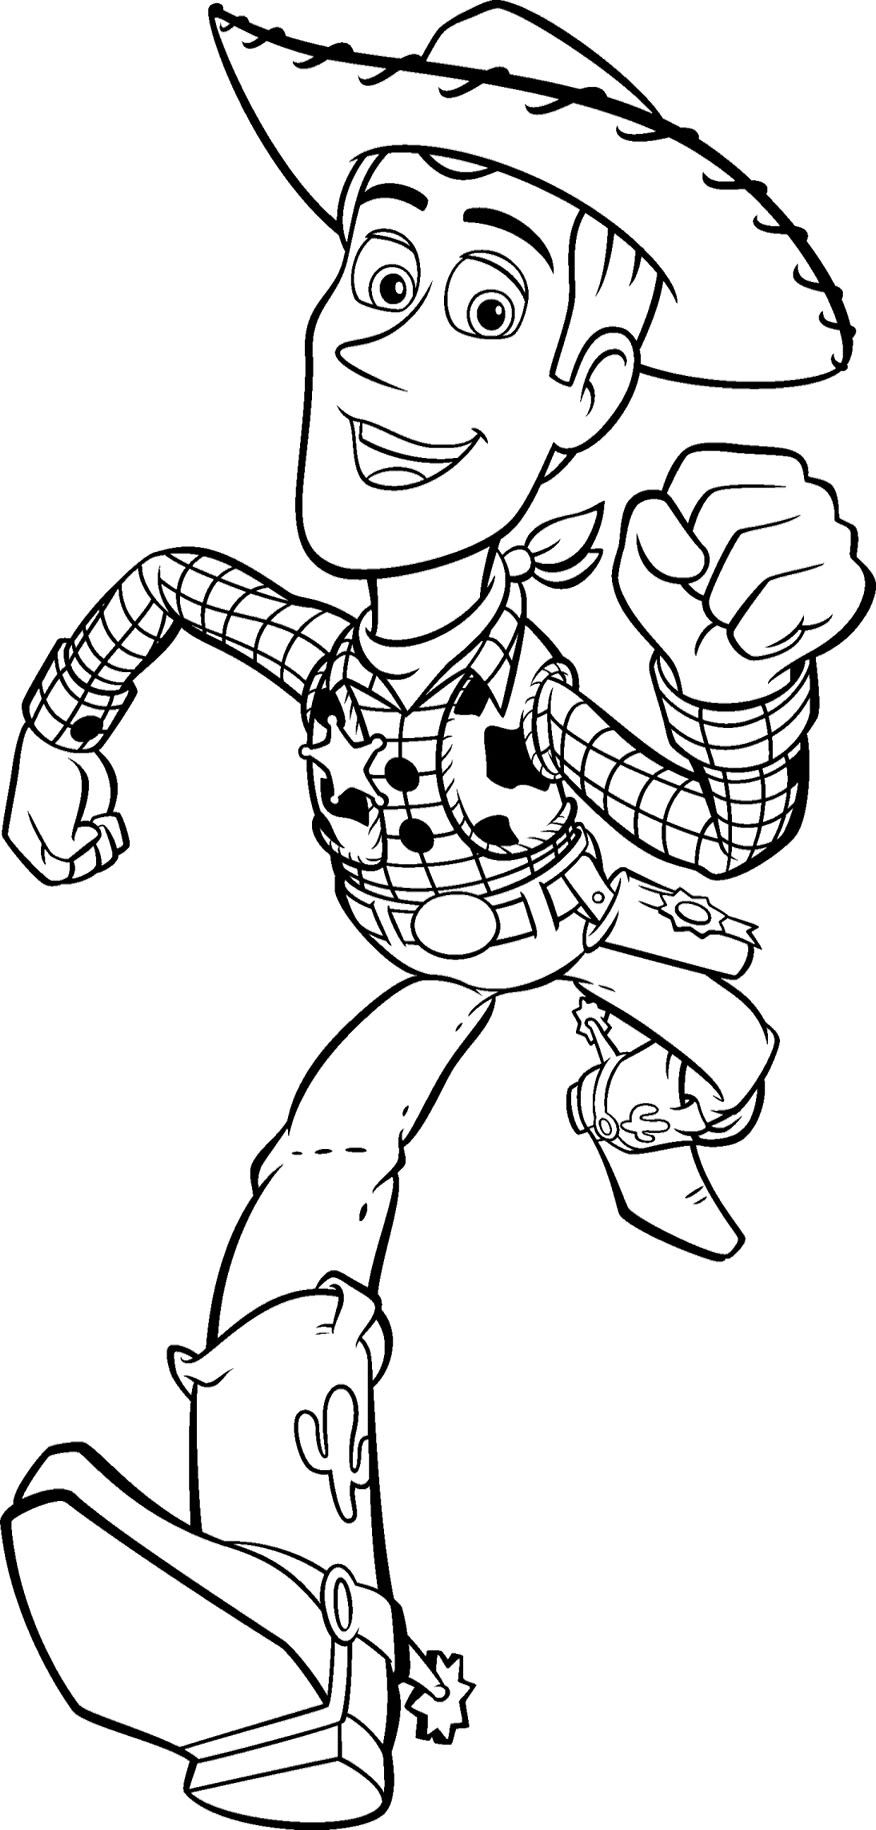 woody and buzz coloring pages toy story woody runs fast coloring pages toy story coloring pages and woody buzz